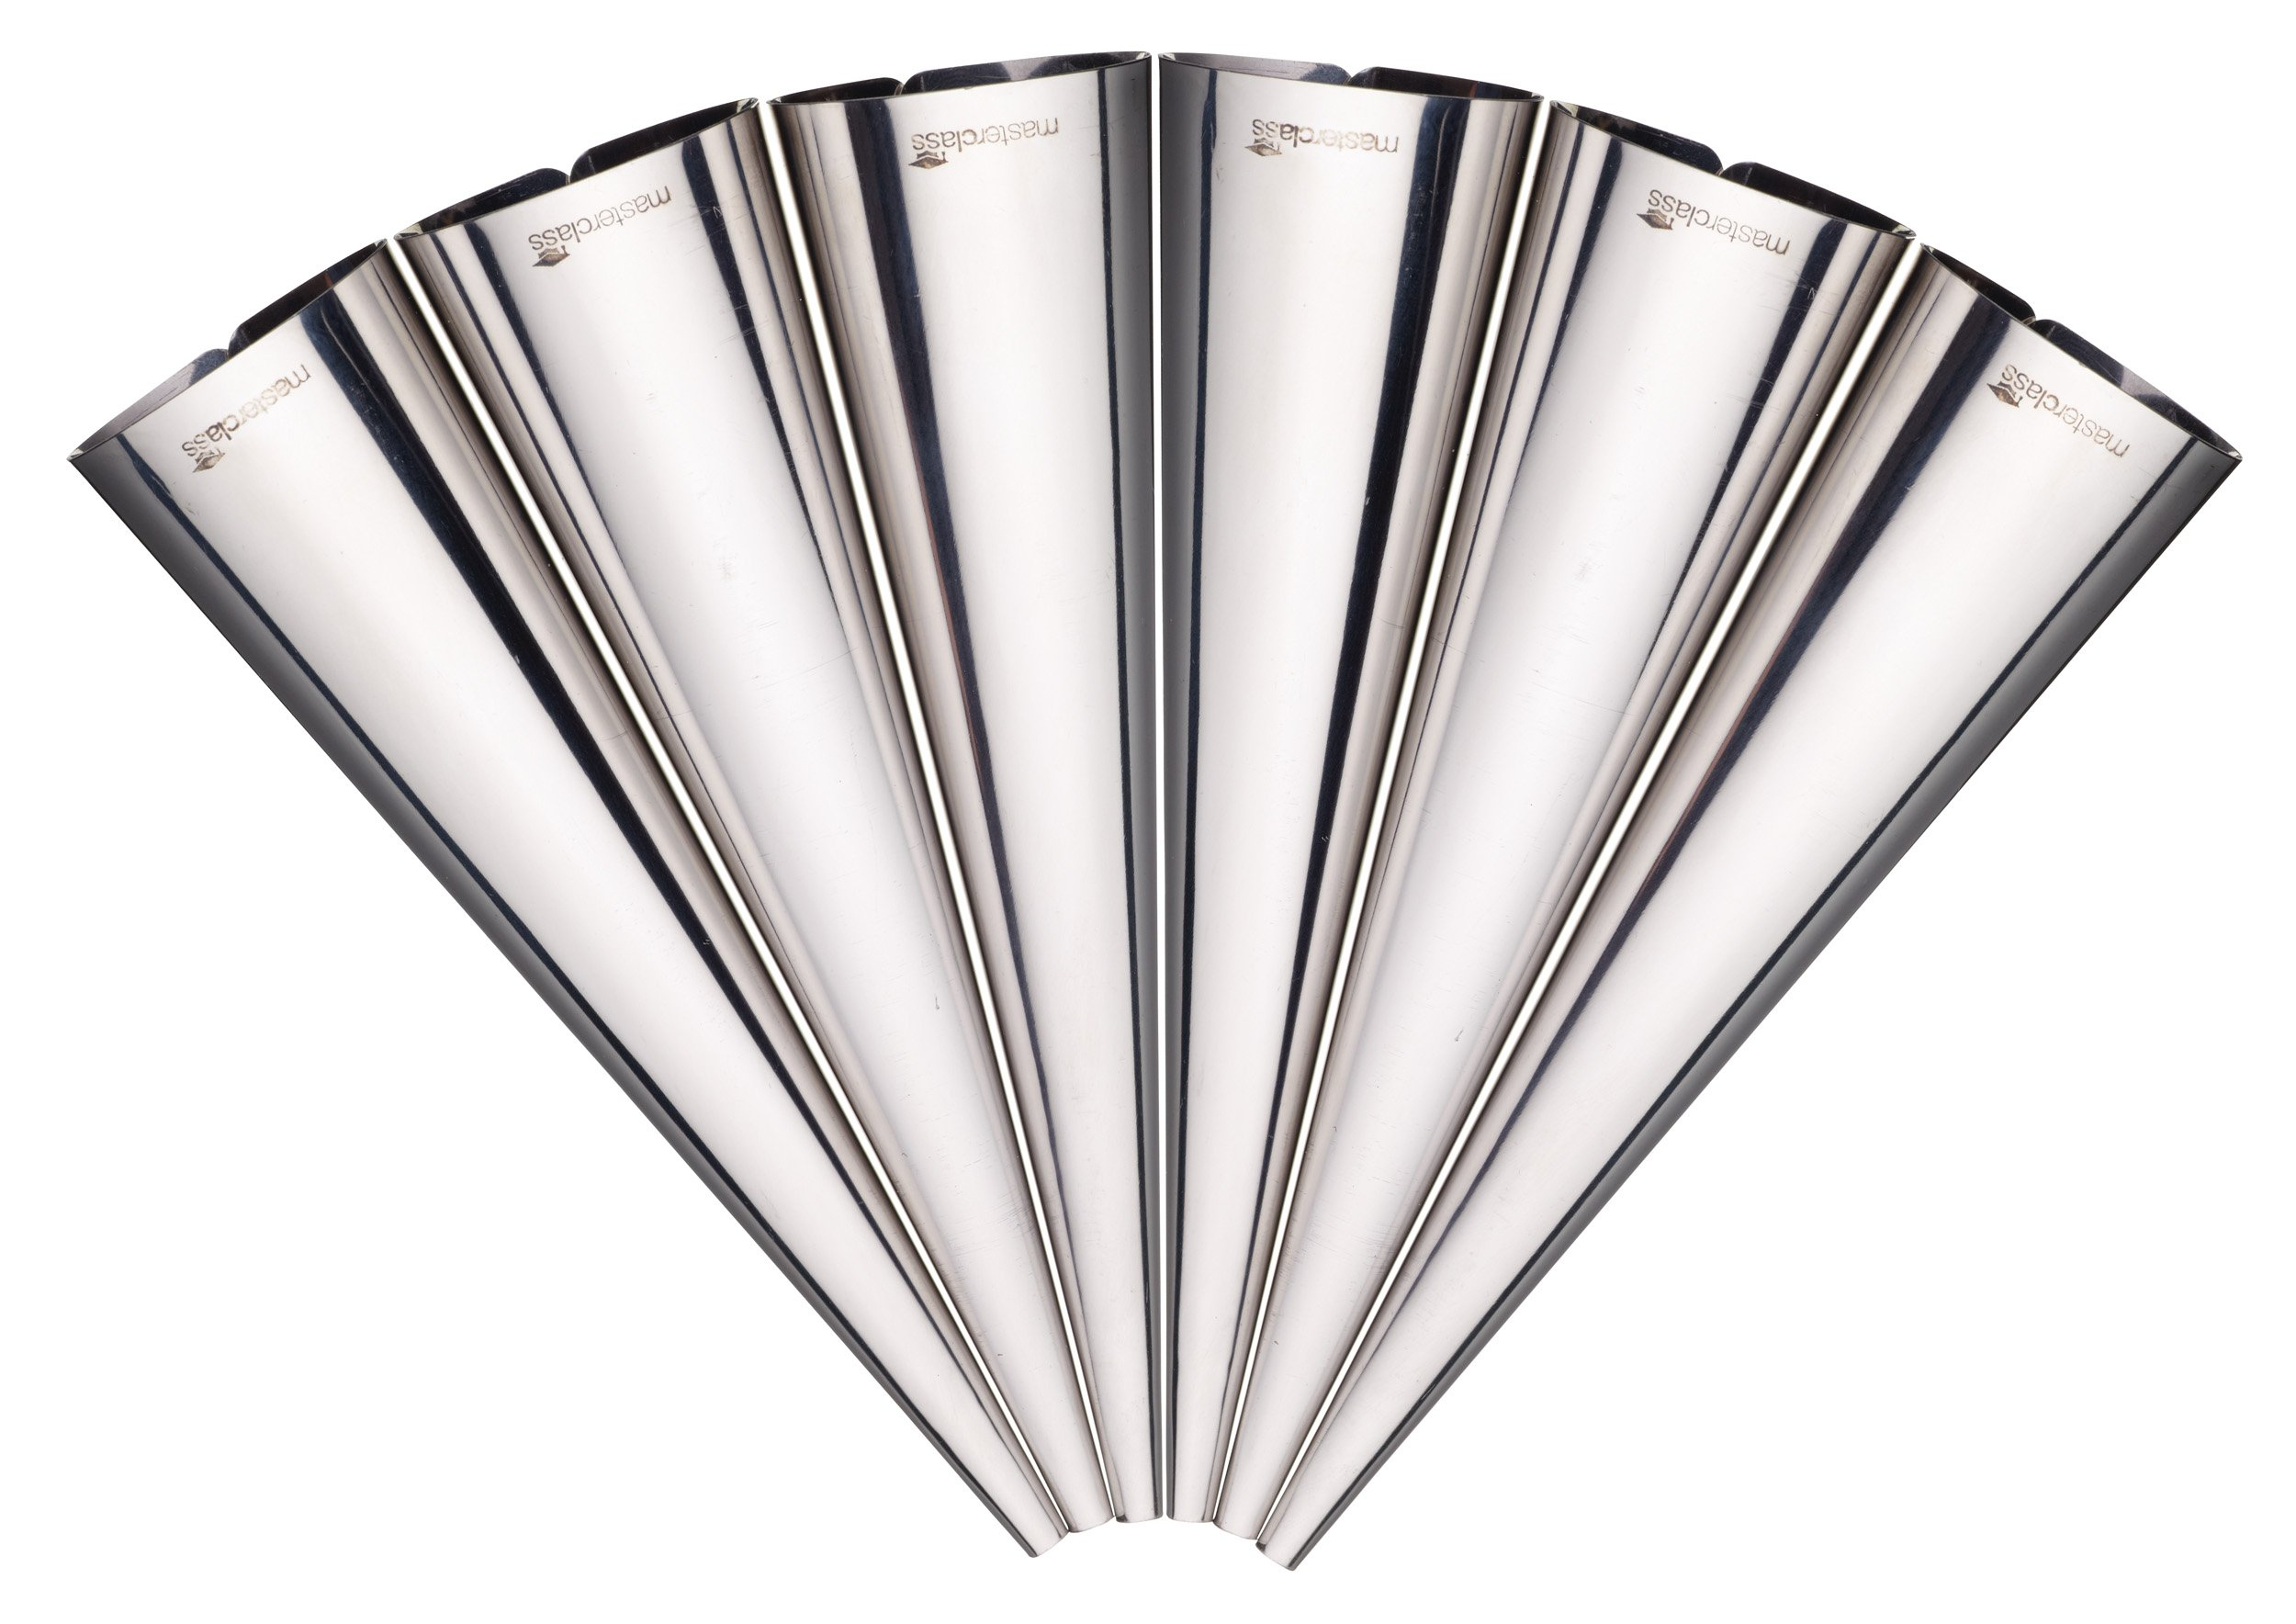 MasterClass 14 cm Cream Horn Moulds, Stainless Steel, 6 Piece Set of Cone Shapers 1